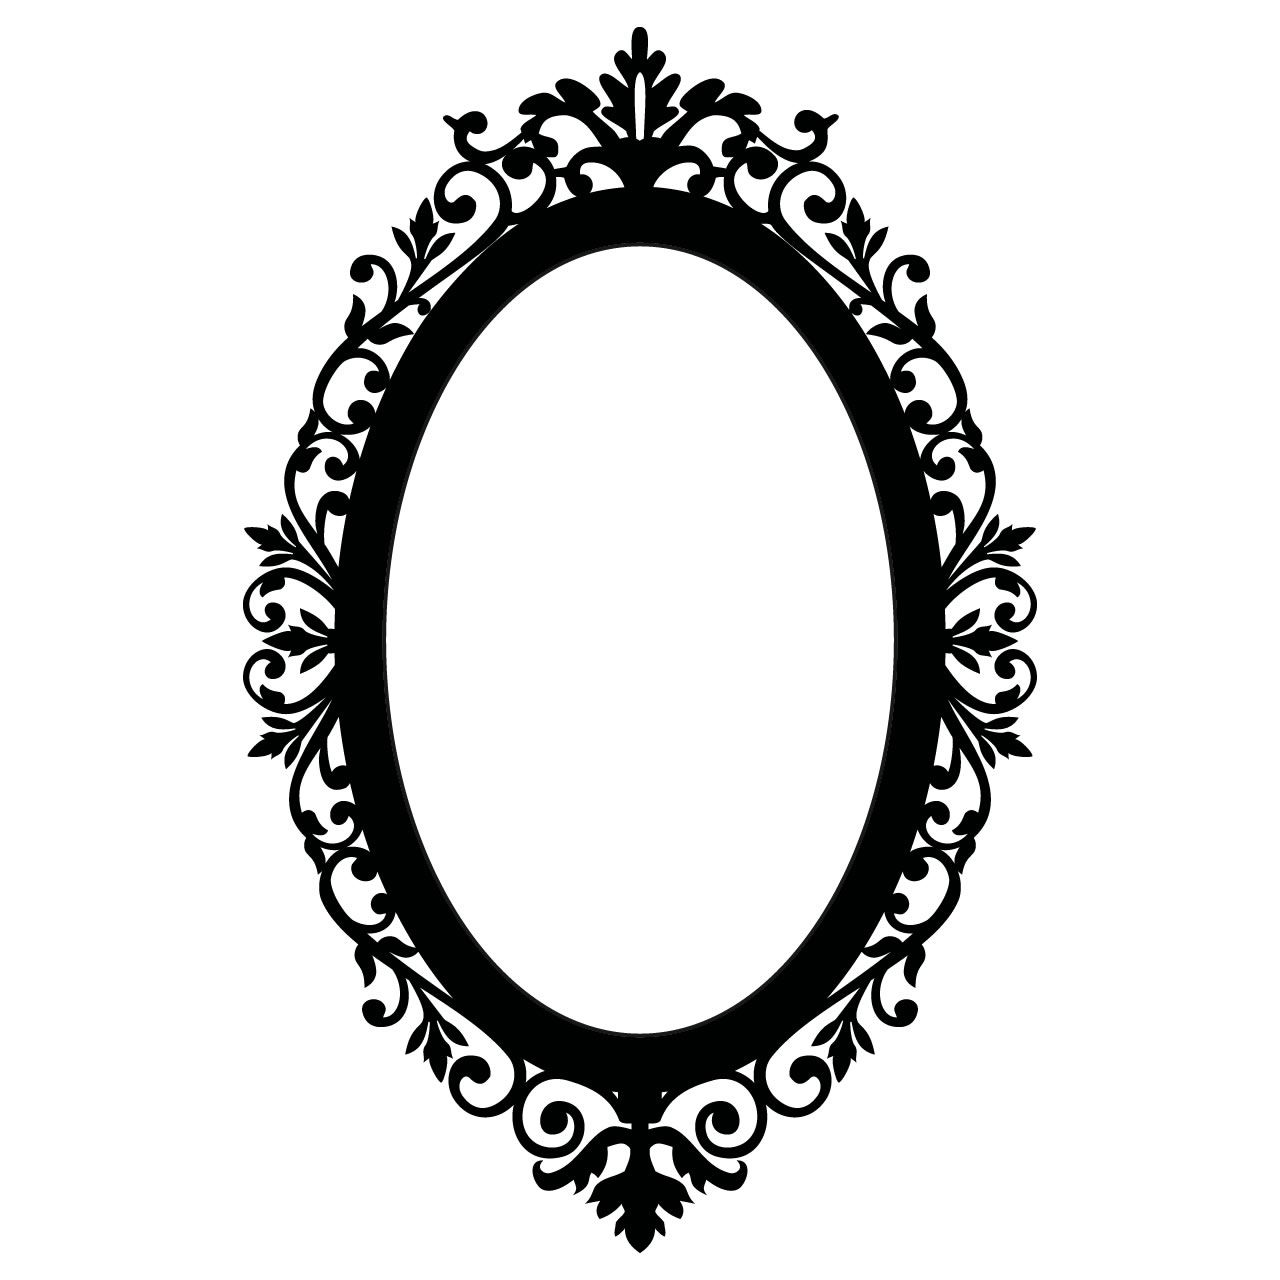 Frame clipart victorian. Oval jewelry ideas pinterest